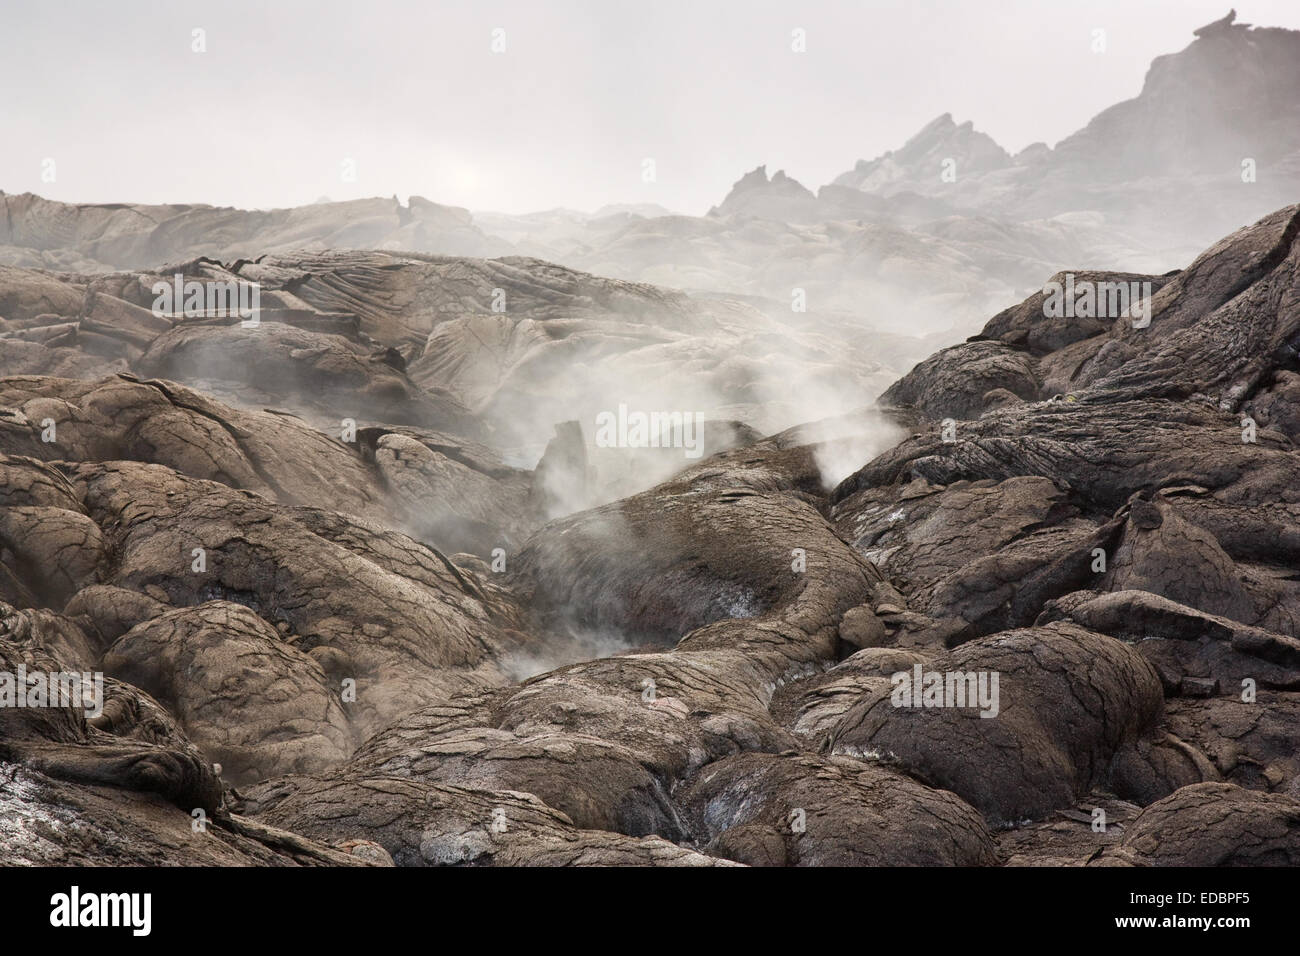 Hazardous sulfurous volcanic gases emerging from the ground near active lava flow in Hawaii. - Stock Image